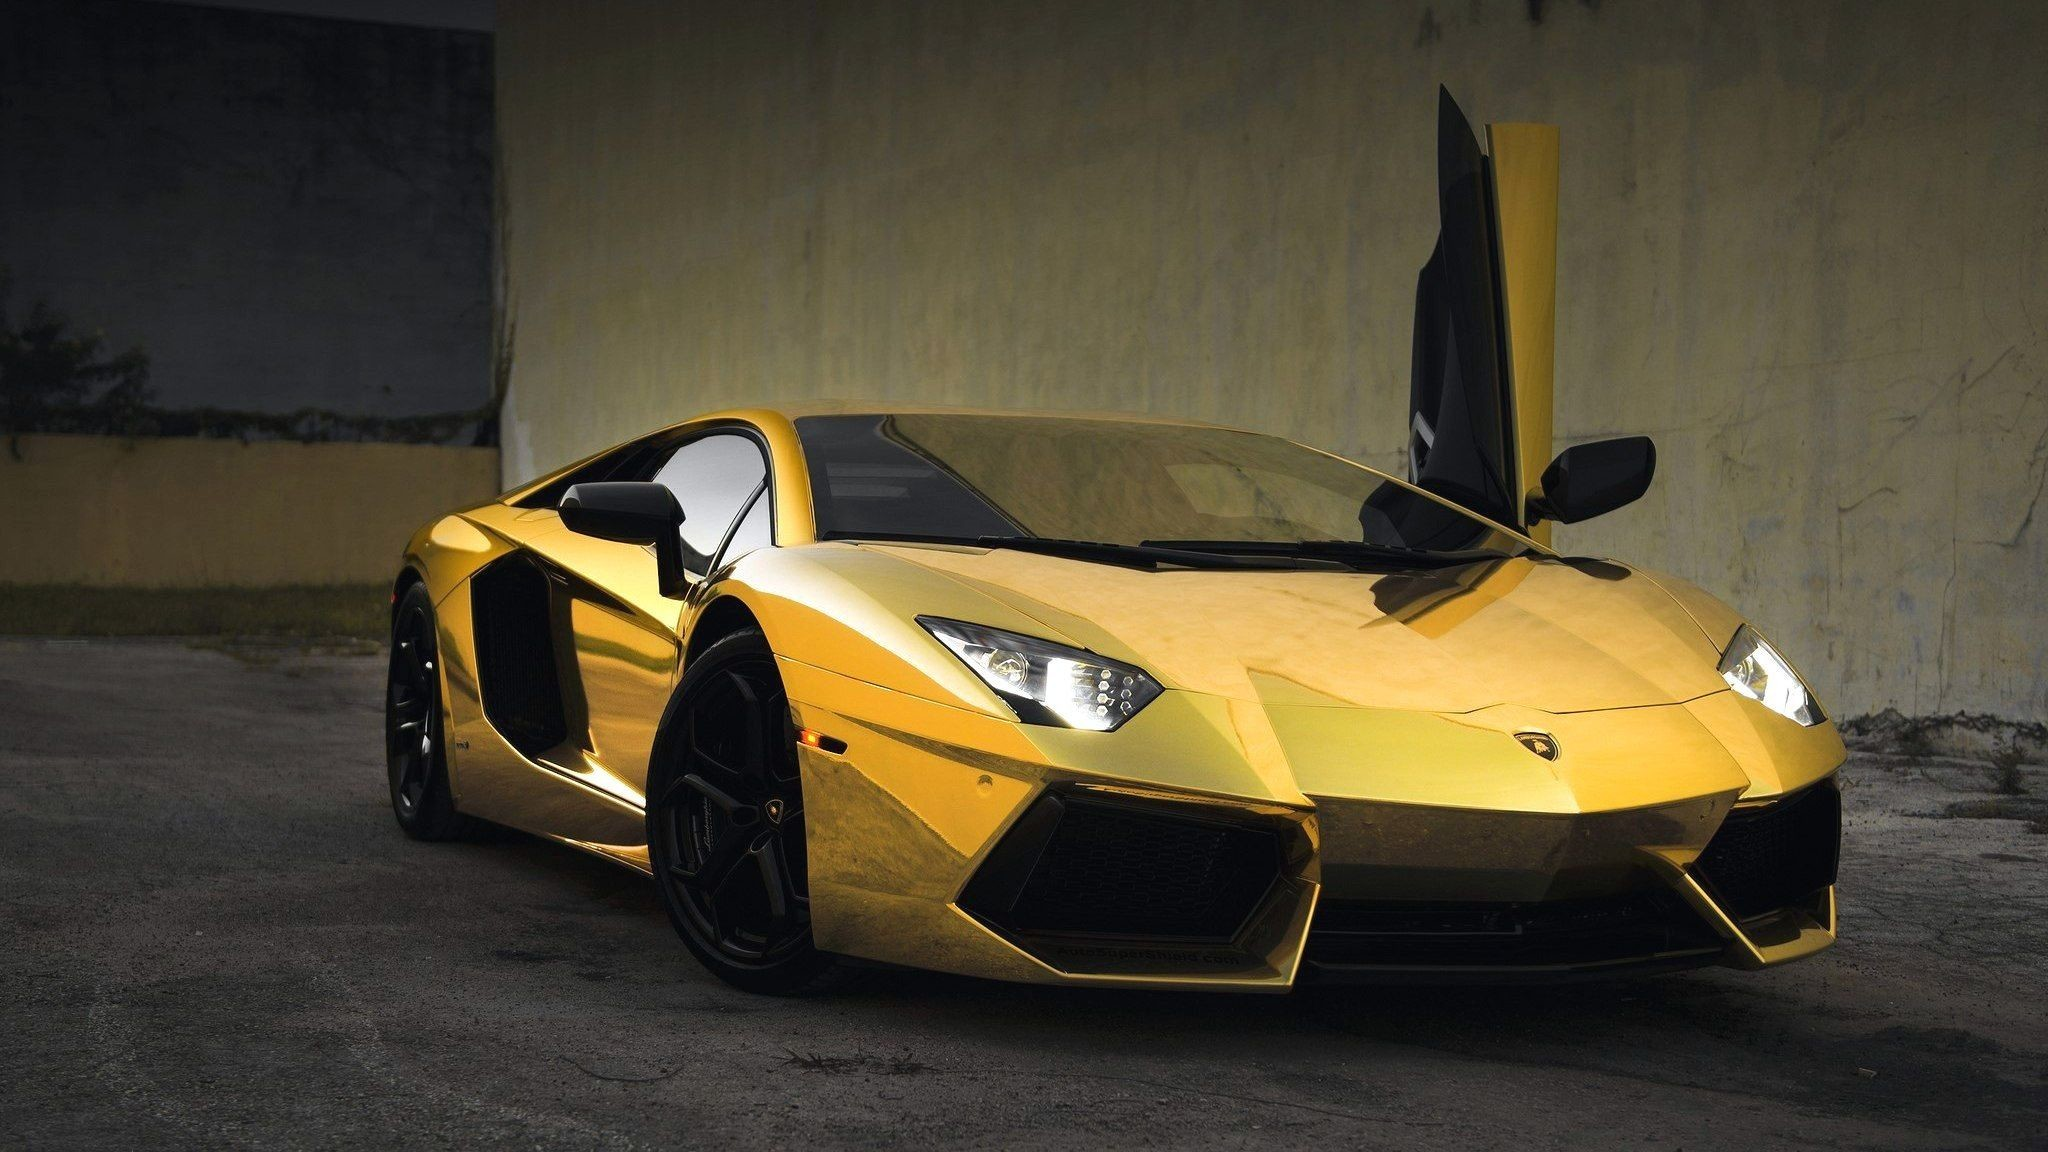 Cool Gold Cars Wallpapers New Gold Cars Hd Wallpapers Gold Cool Wallpapers Cars 2048x1152 Wallpaper Teahub Io